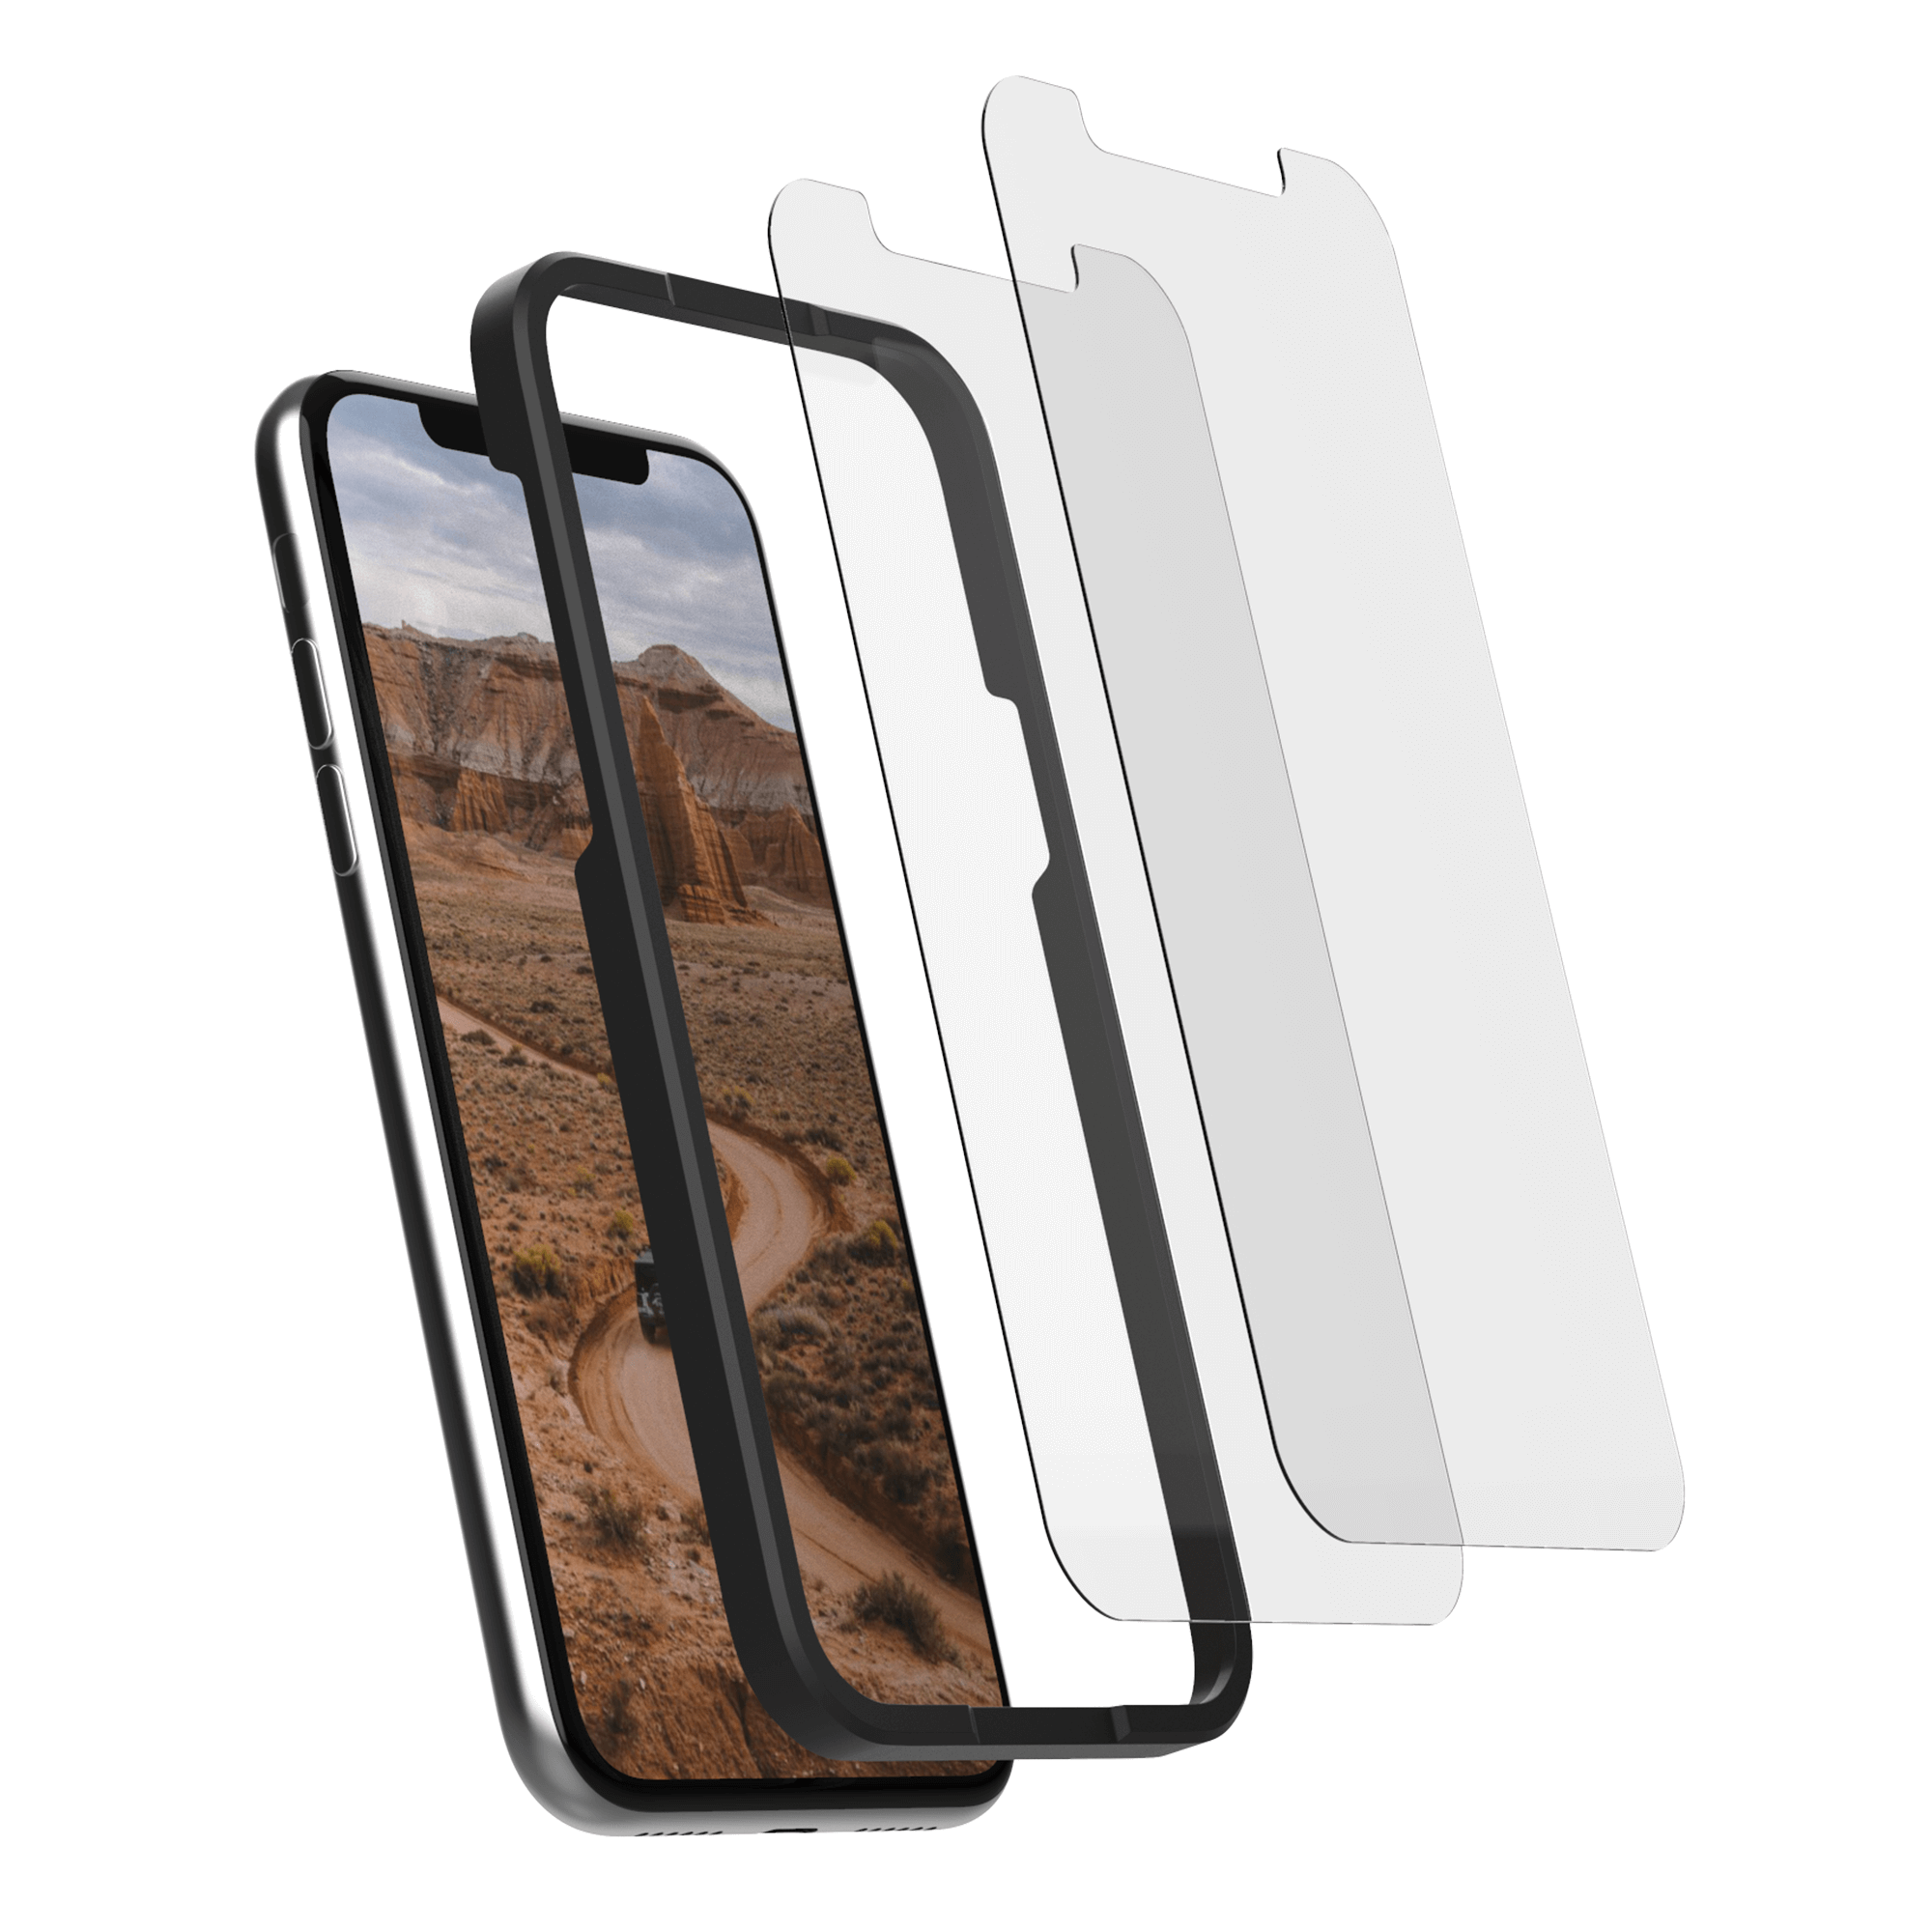 iPhone 11 Pro Max/XS Max Tempered Glass Screen Protector (2 Pack)